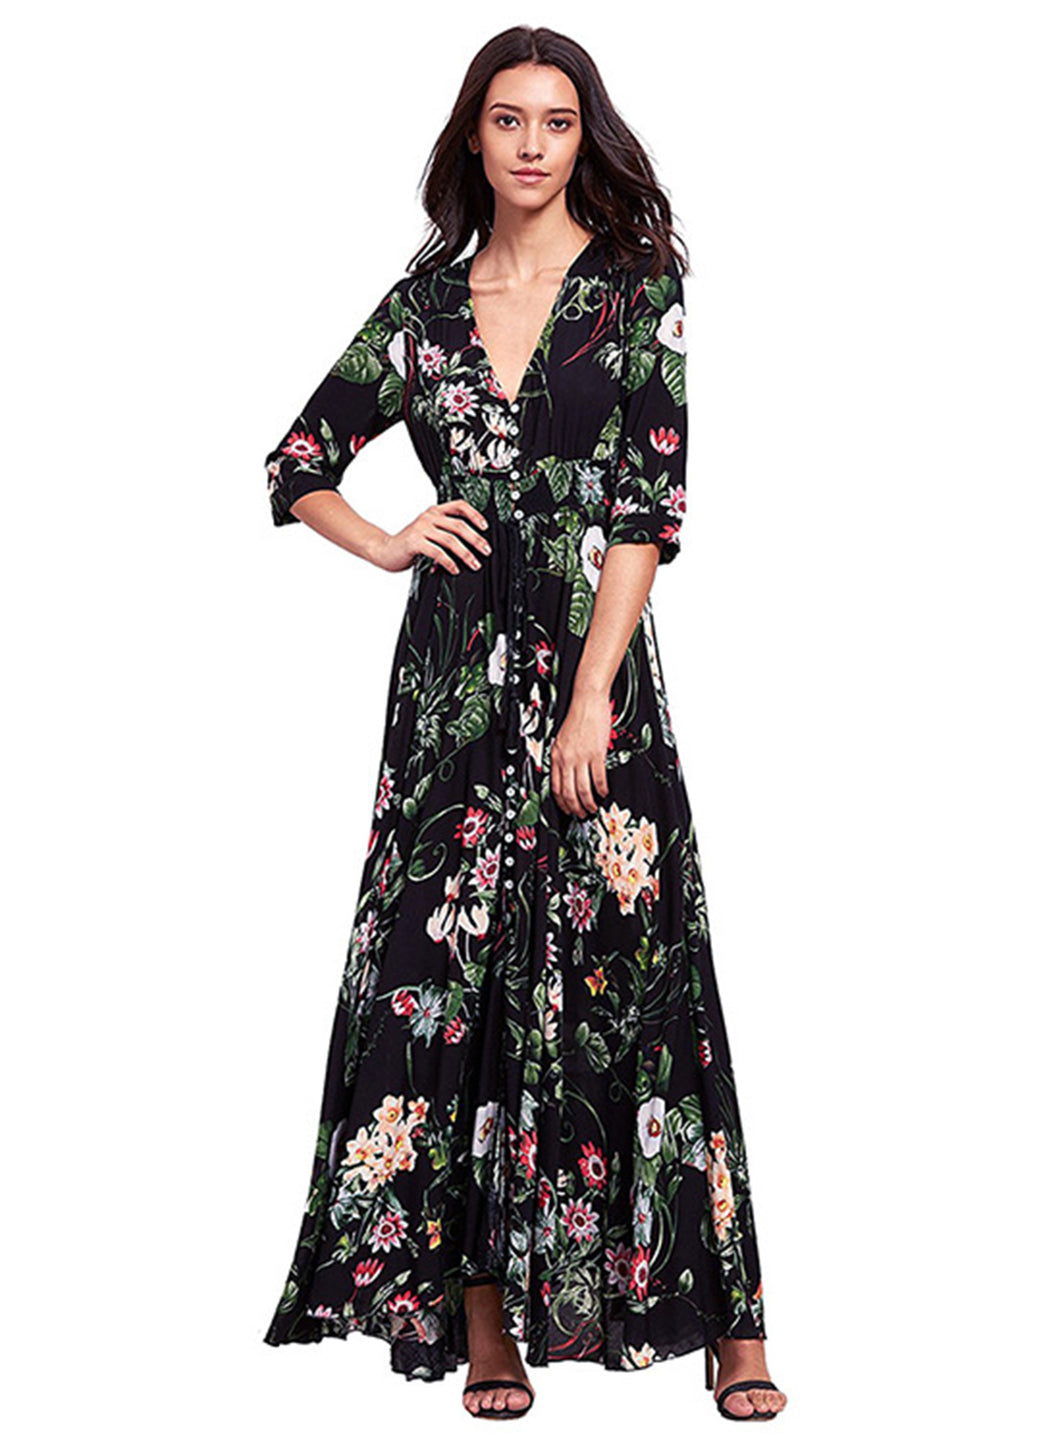 Women's V Neck Elastic Waist Floral Printed Maxi Bohemian Dress